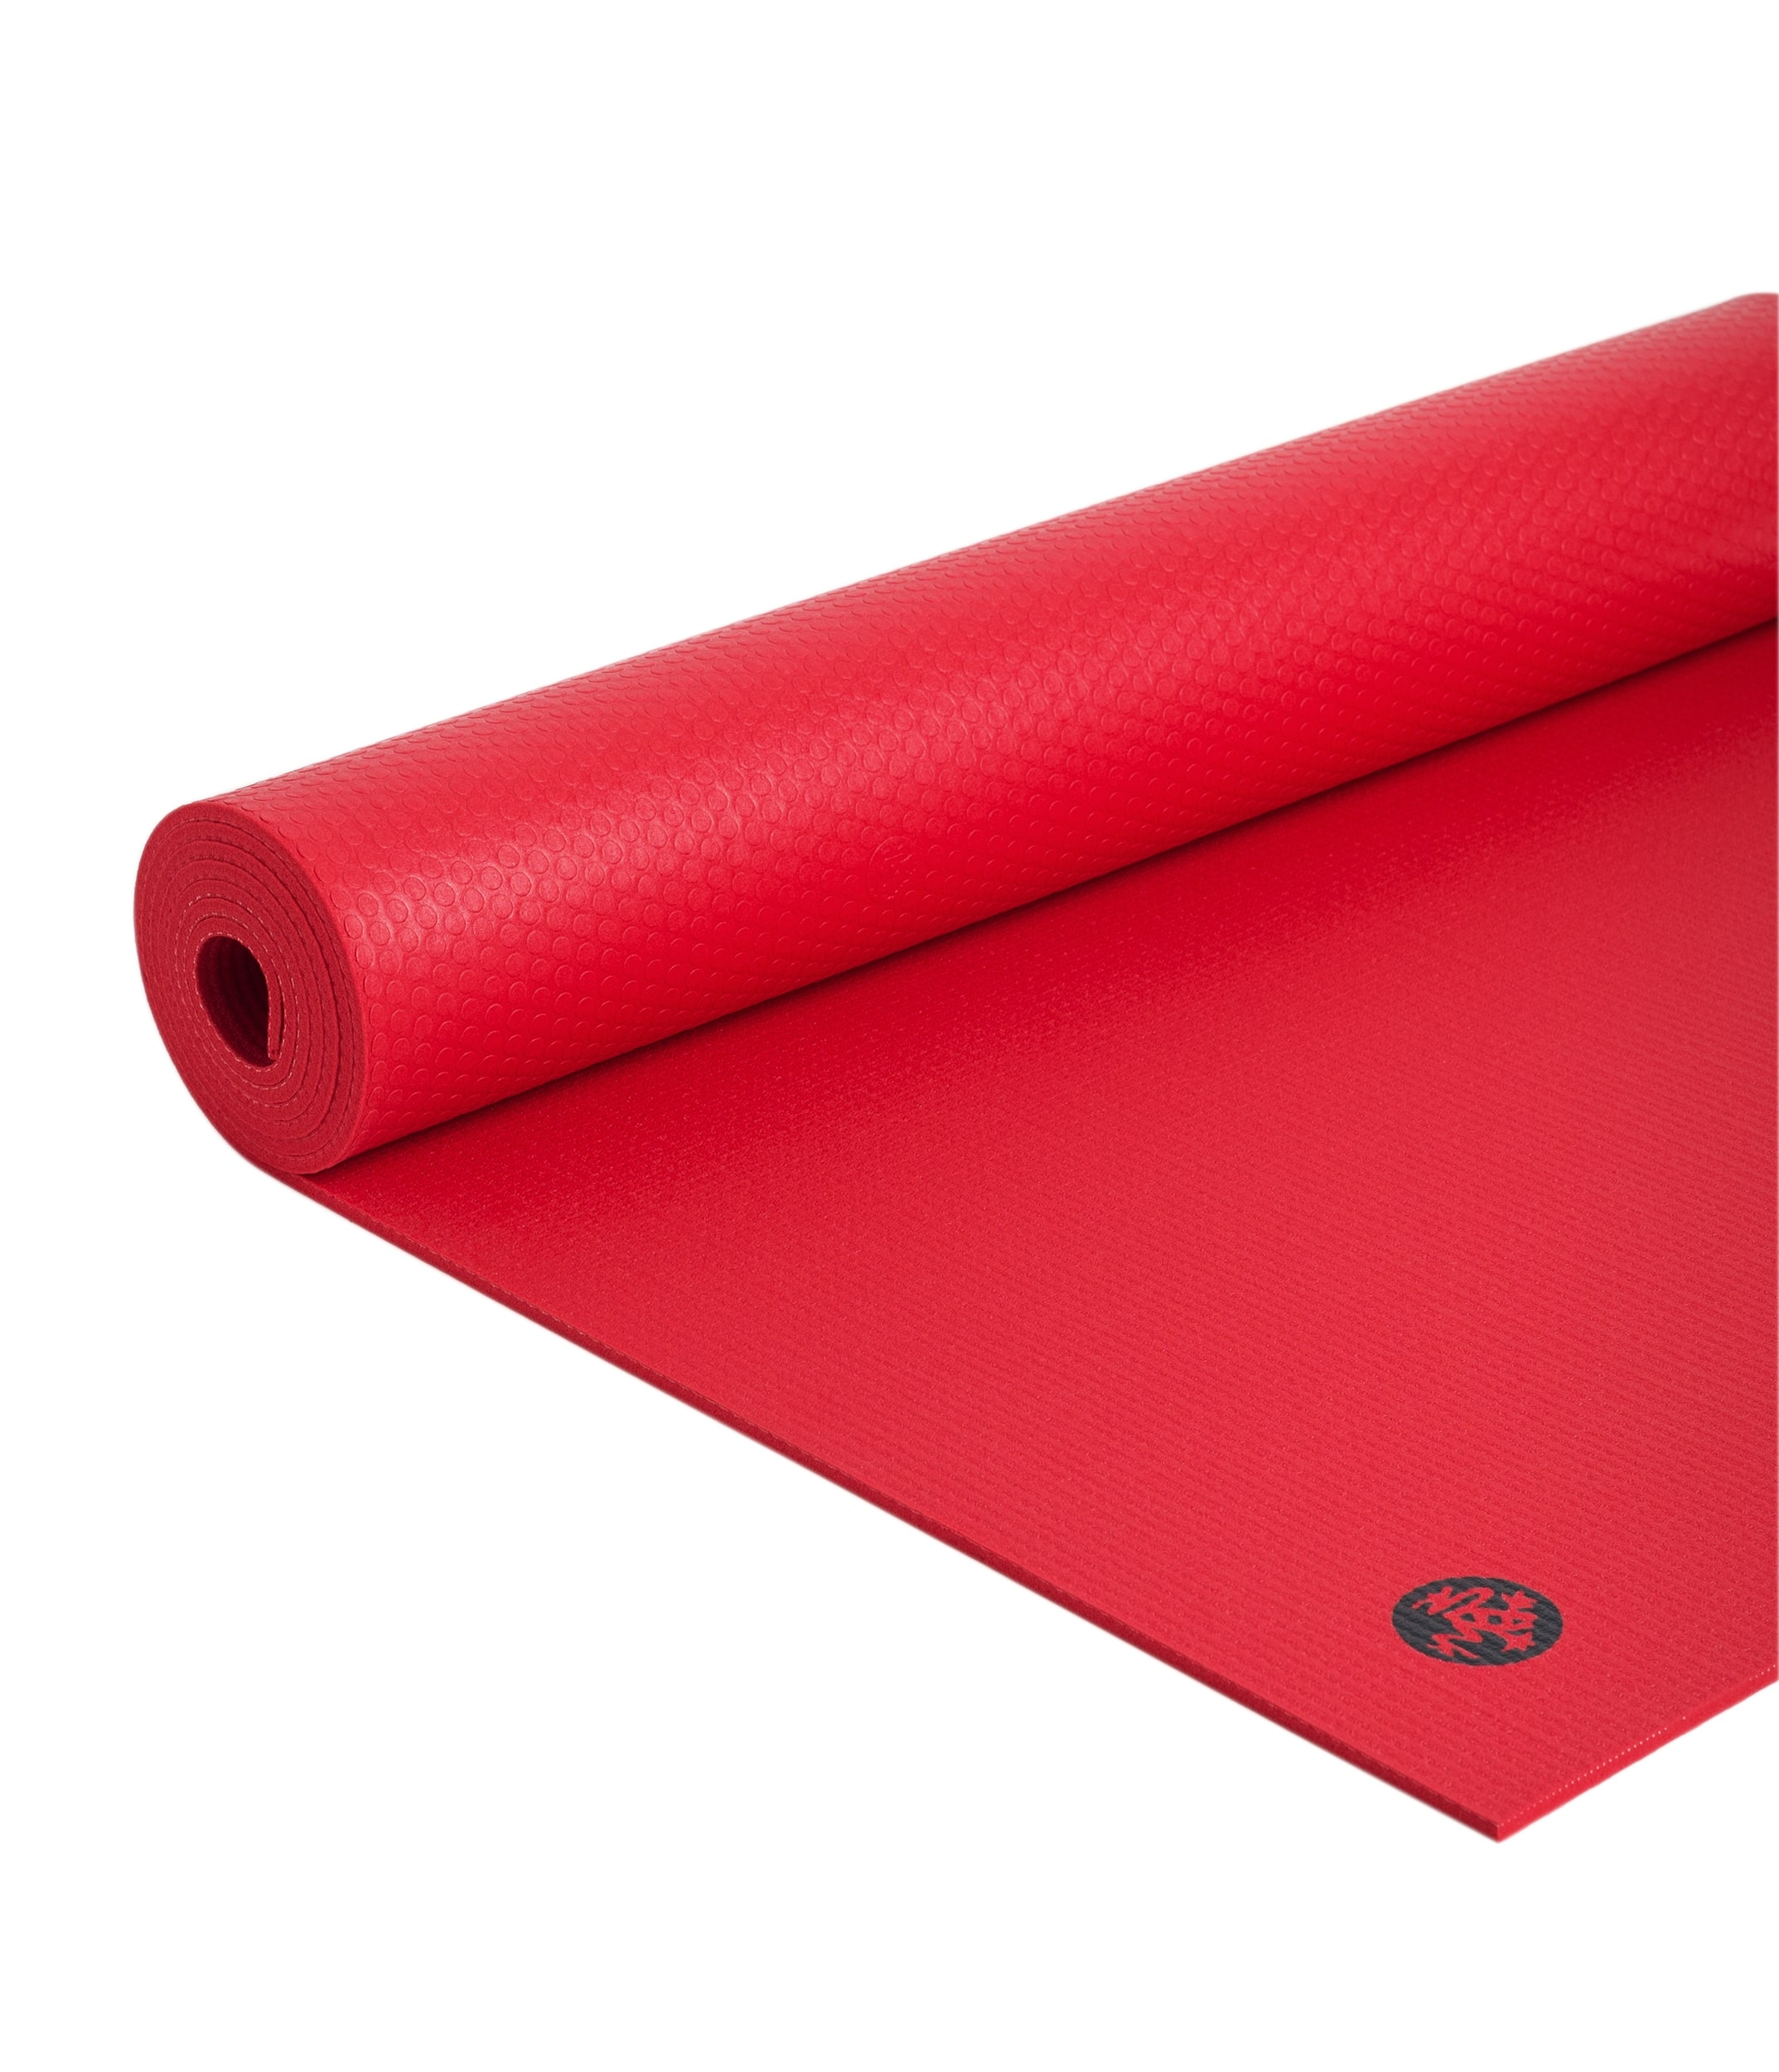 com yoga mat ip walmart mats lotus alignment brands